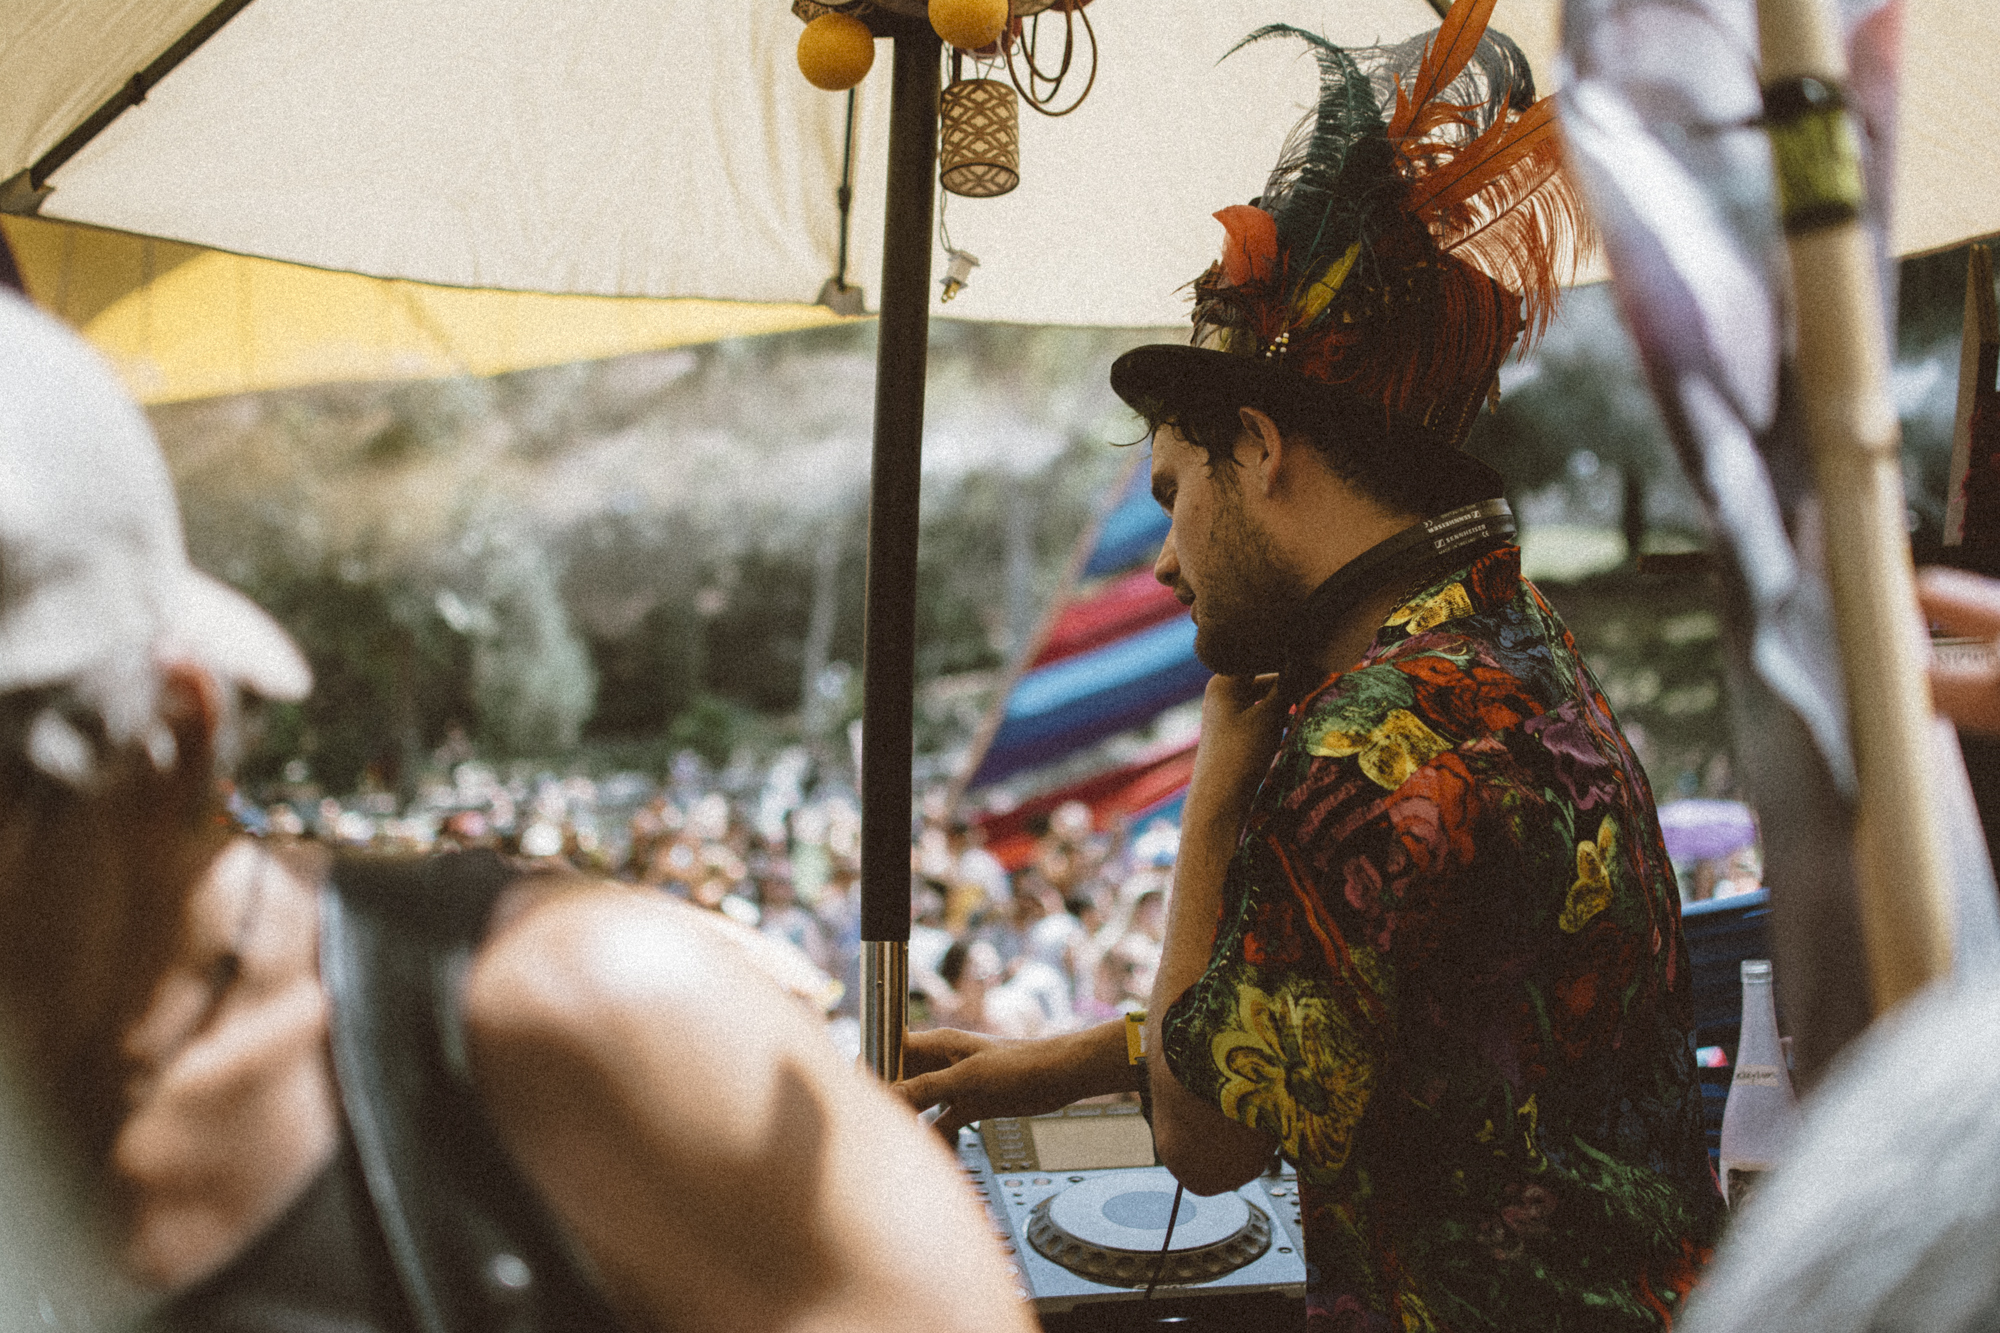 Mikey Lion at the Inaugural Woogie Weekend in Silverado, CA July 17-19. Mariya Dondonyan | Daily Trojan